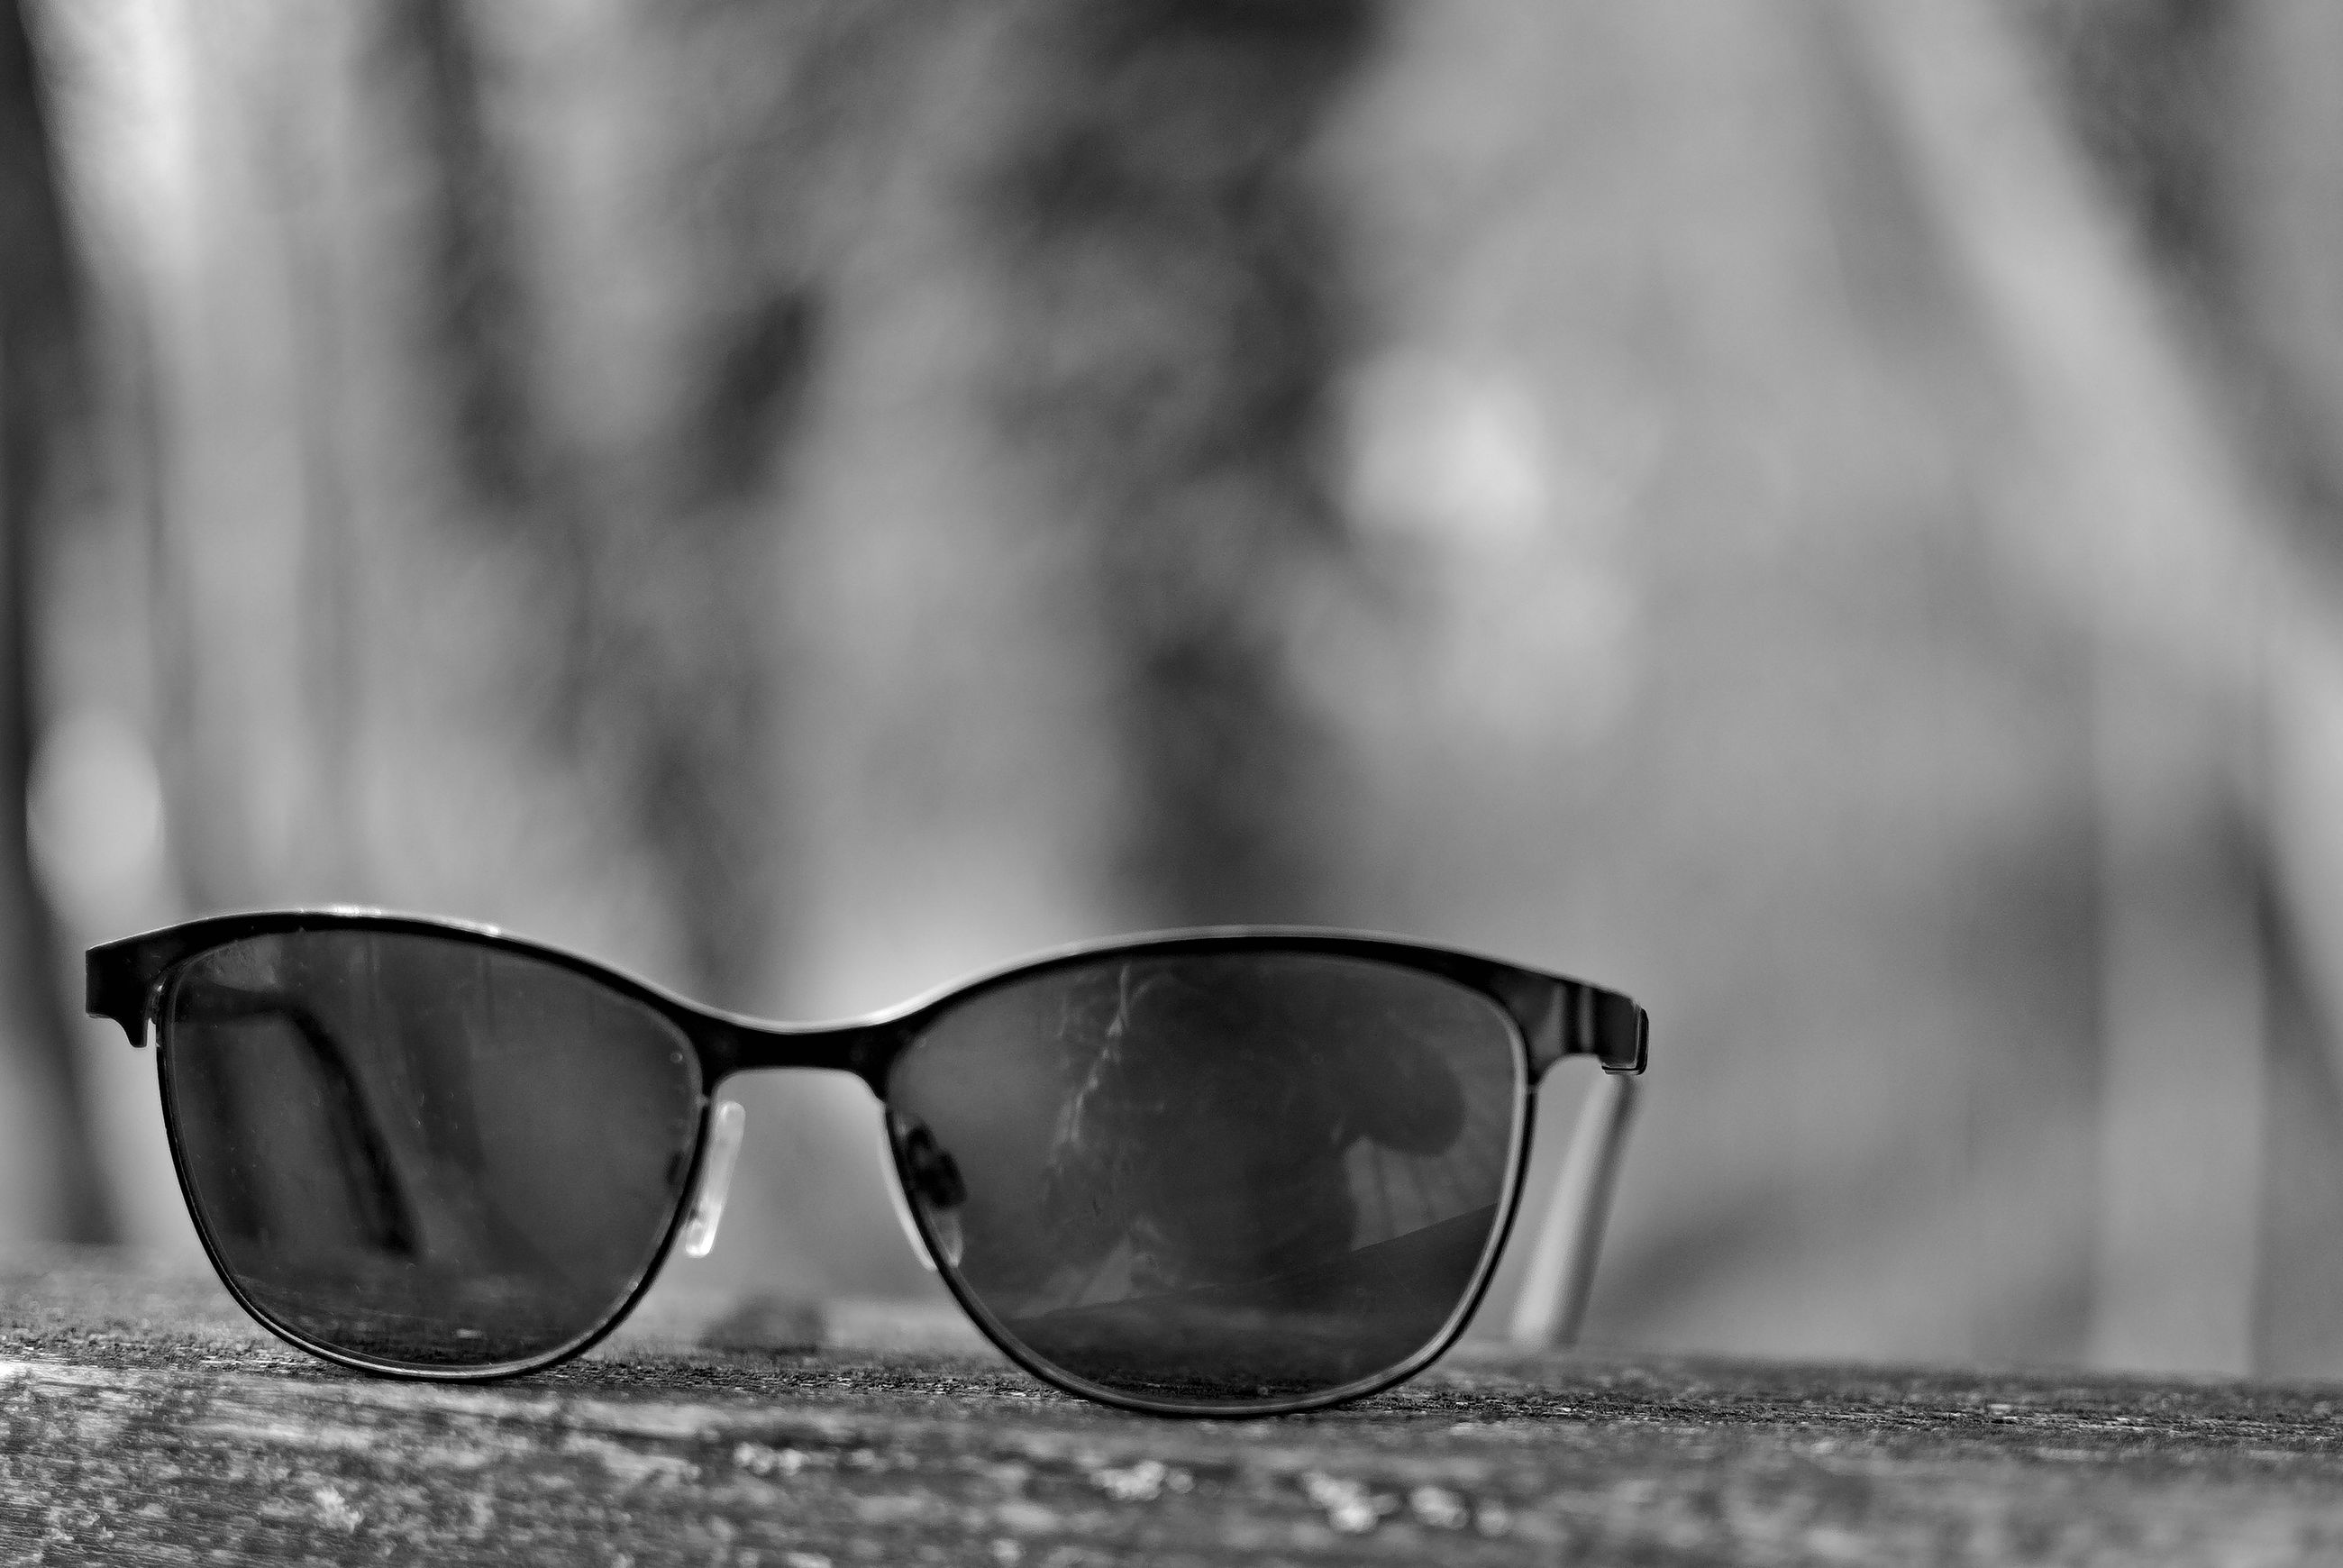 glasses, focus on foreground, fashion, sunglasses, close-up, transparent, personal accessory, eyewear, reflection, protection, still life, glass - material, security, day, eyeglasses, no people, selective focus, nature, table, outdoors, surface level